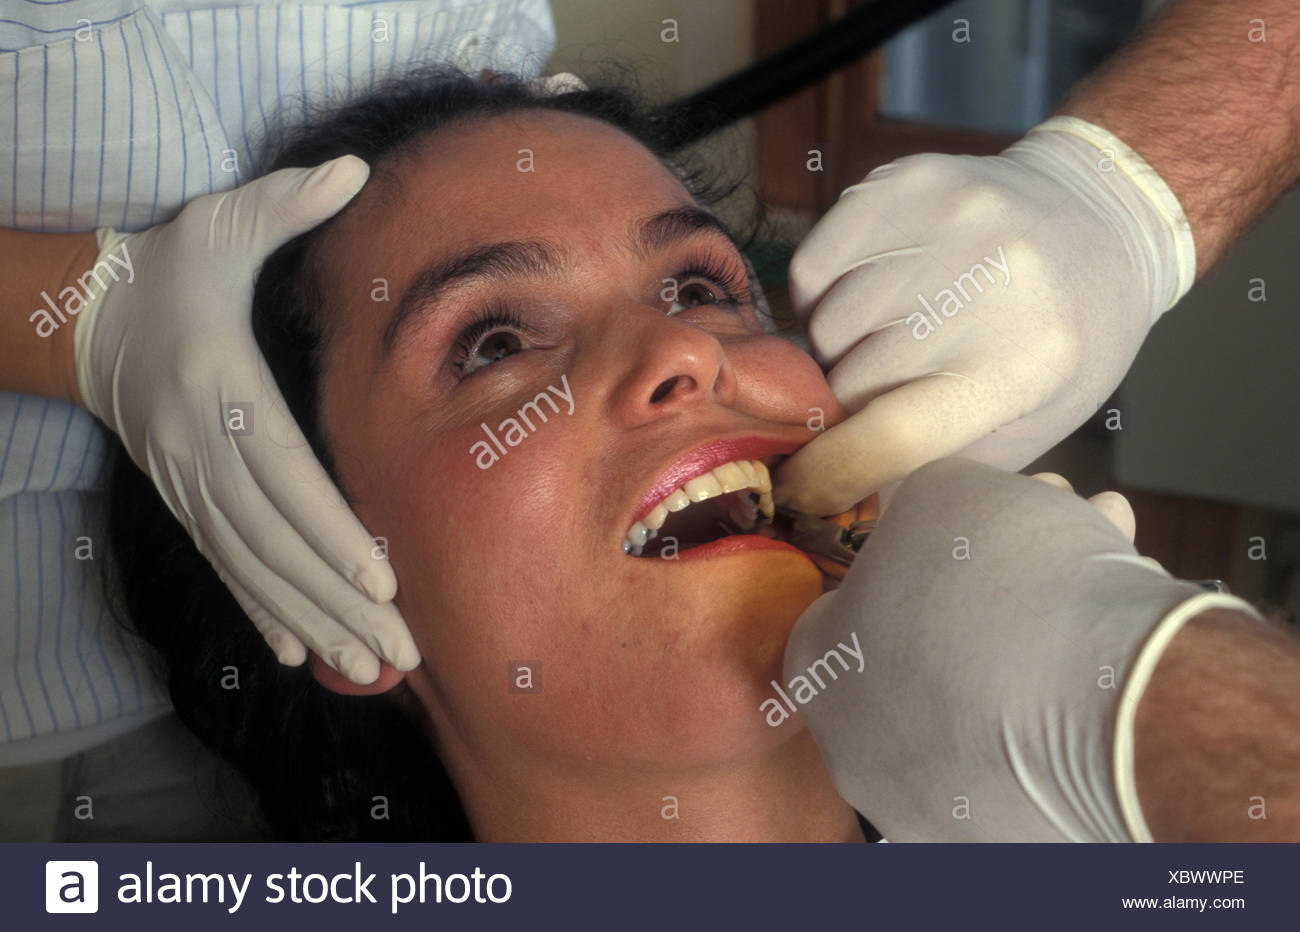 anglo-israeli woman at dentist having tooth extraction - Stock Image